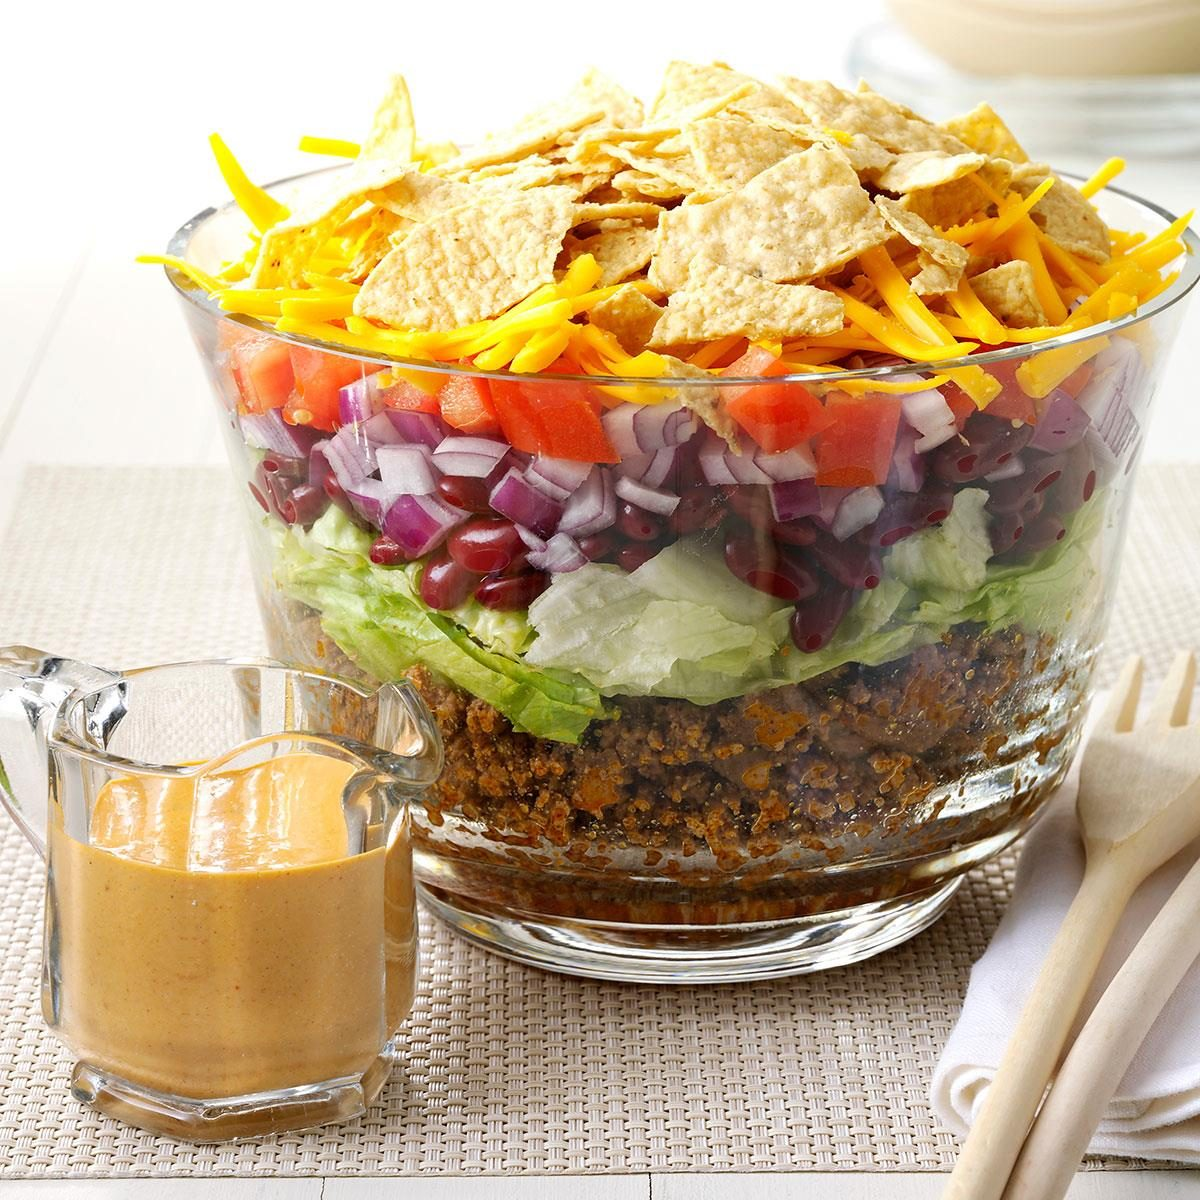 Inspired by: Taco Bell's Fiesta Taco Salad